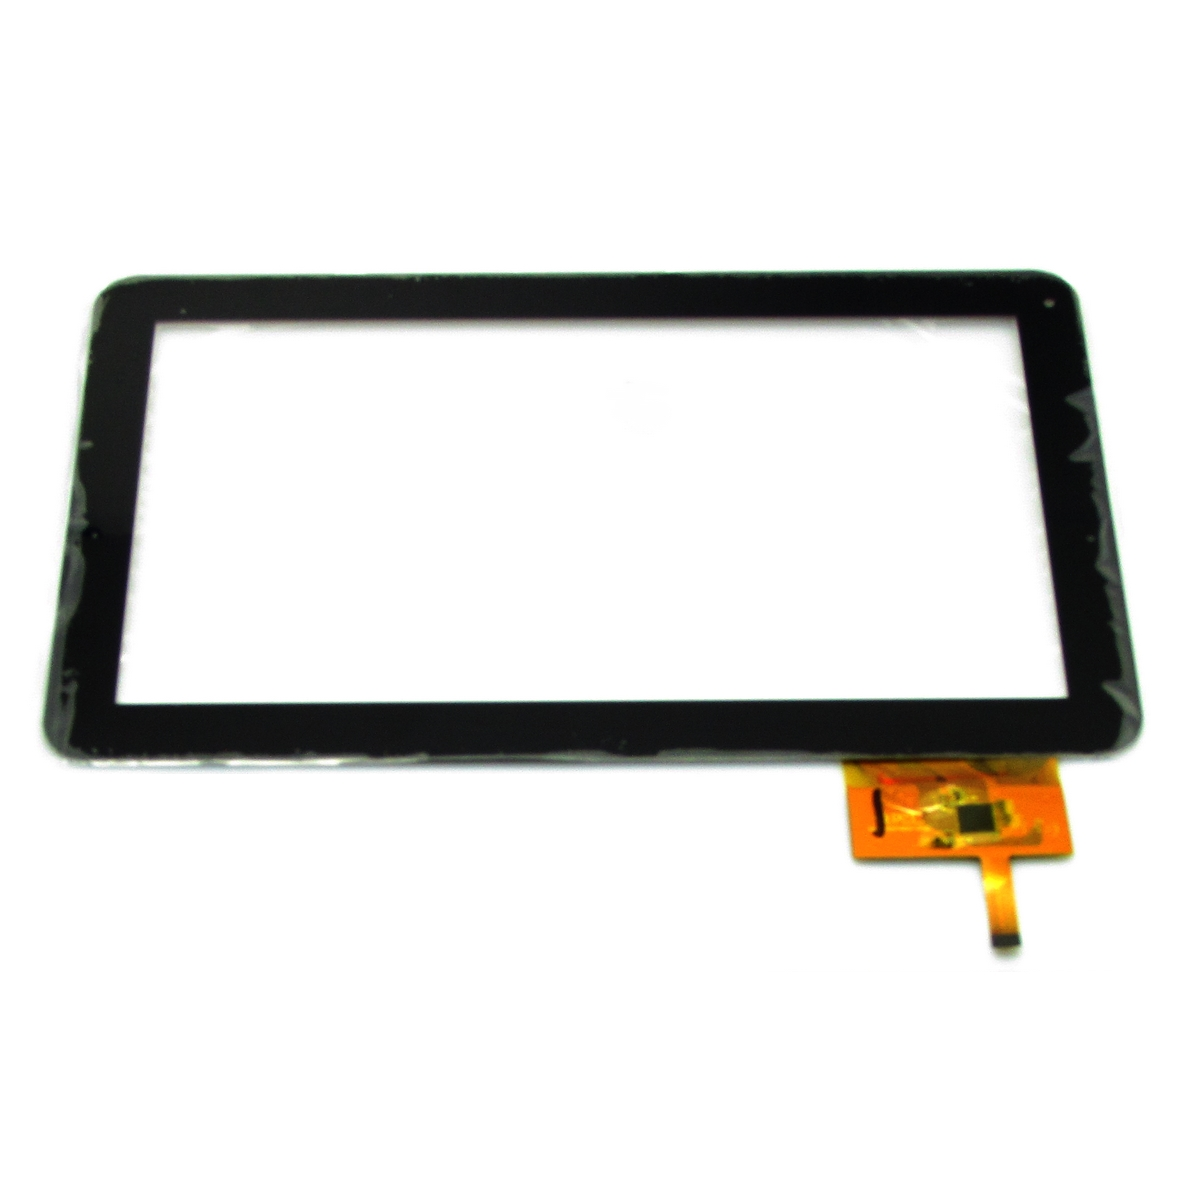 Touchscreen Digitizer iJoy Memphis 4G Geam Sticla Tableta imagine powerlaptop.ro 2021